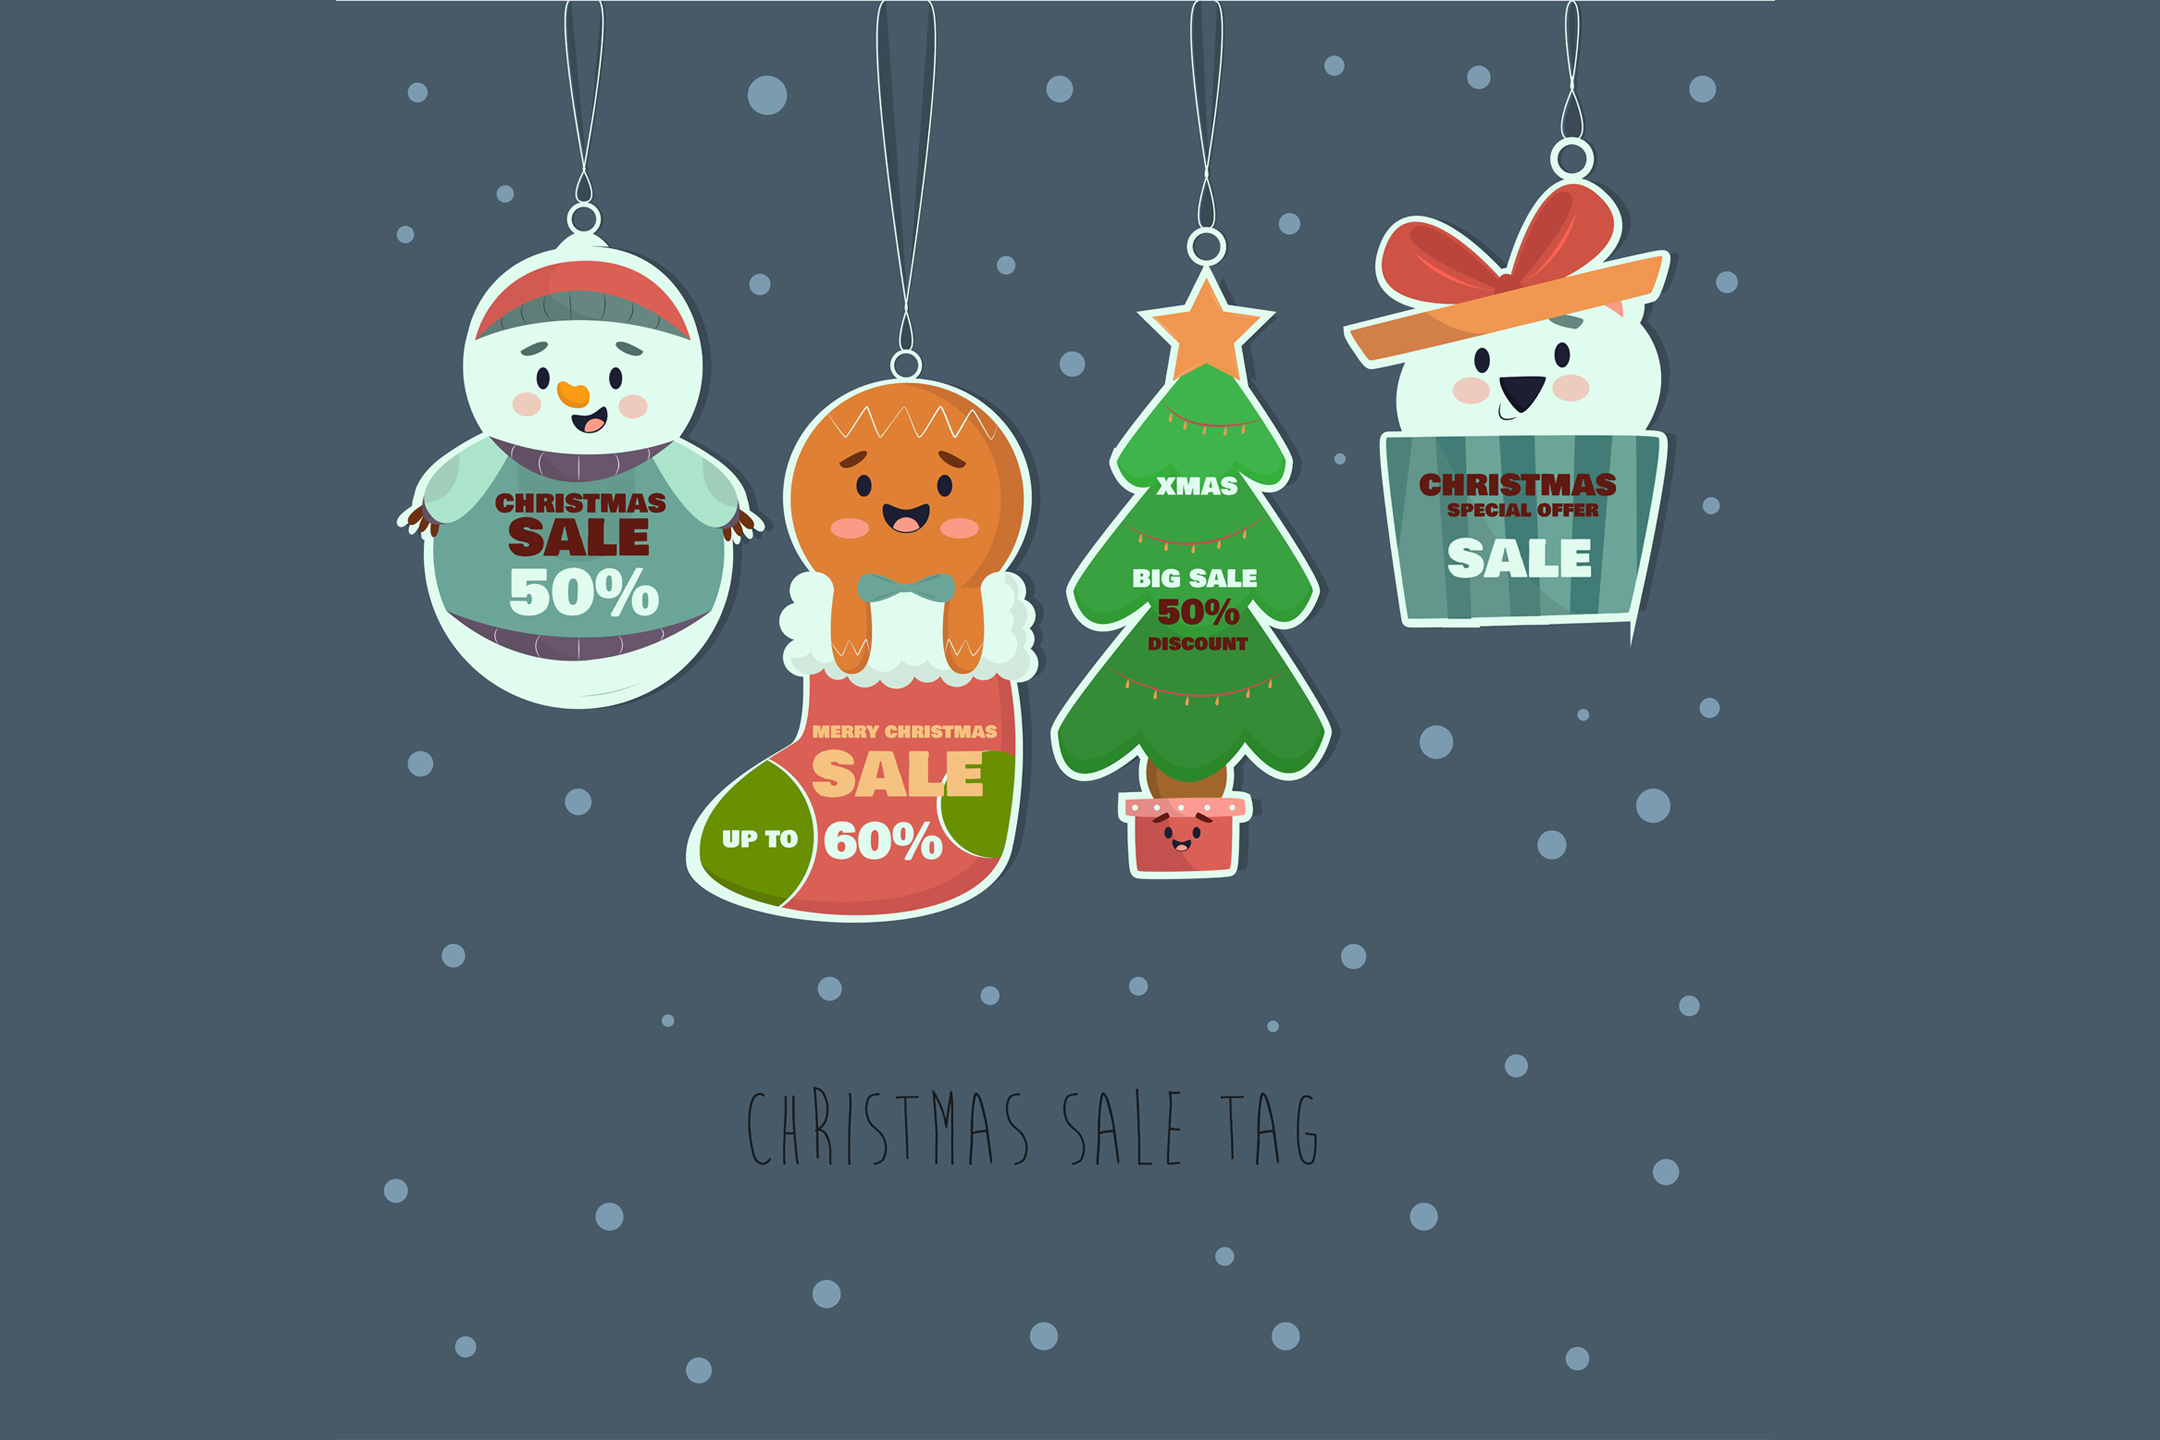 Download Free Hand Drawn Christmas Sale Tag Collection Graphic By Aprlmp276 for Cricut Explore, Silhouette and other cutting machines.